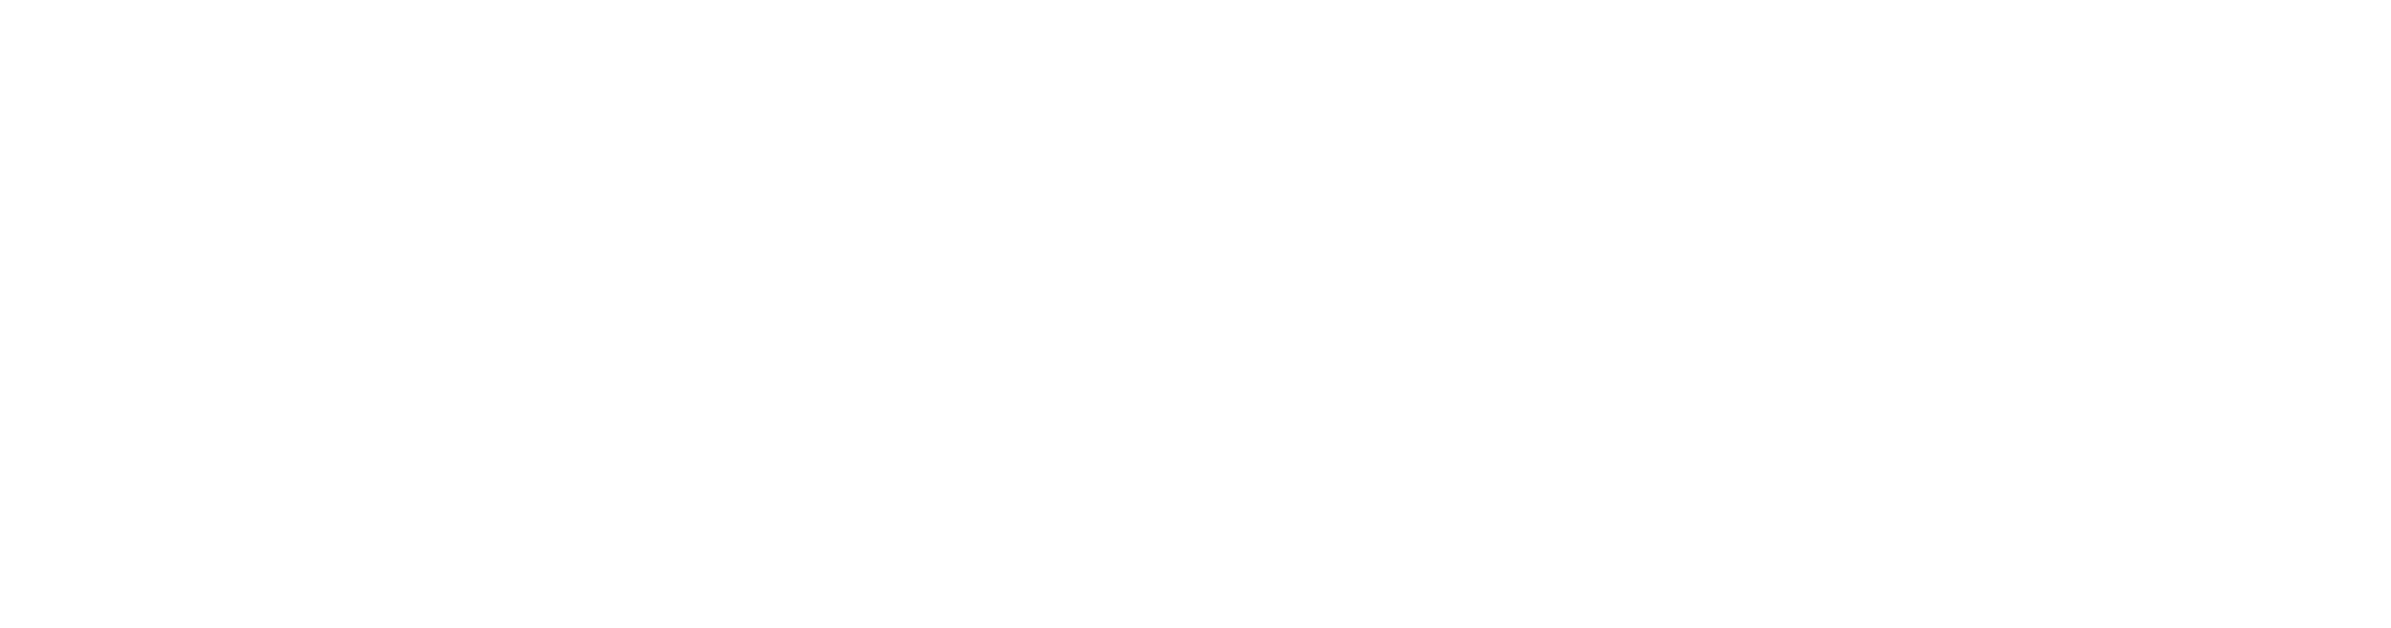 Earthtones Landscape Management